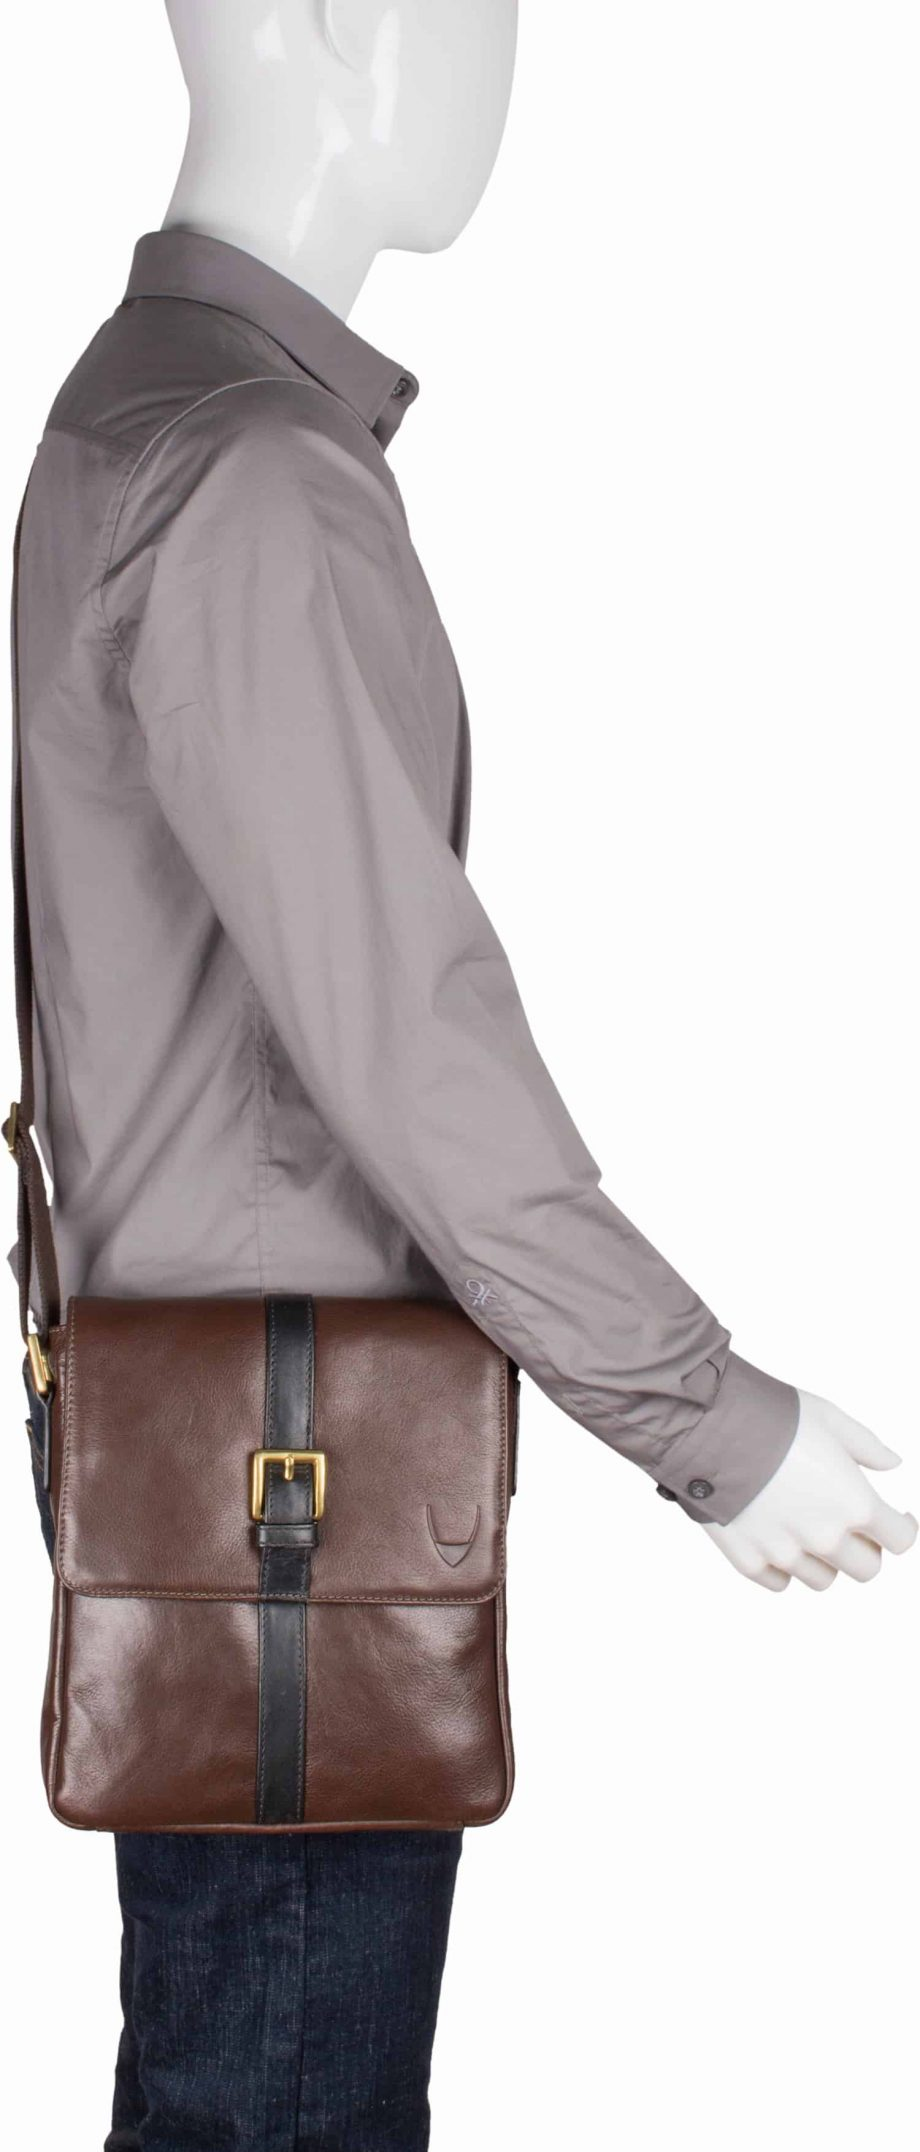 man wearing brown leather gable city bag with black trim